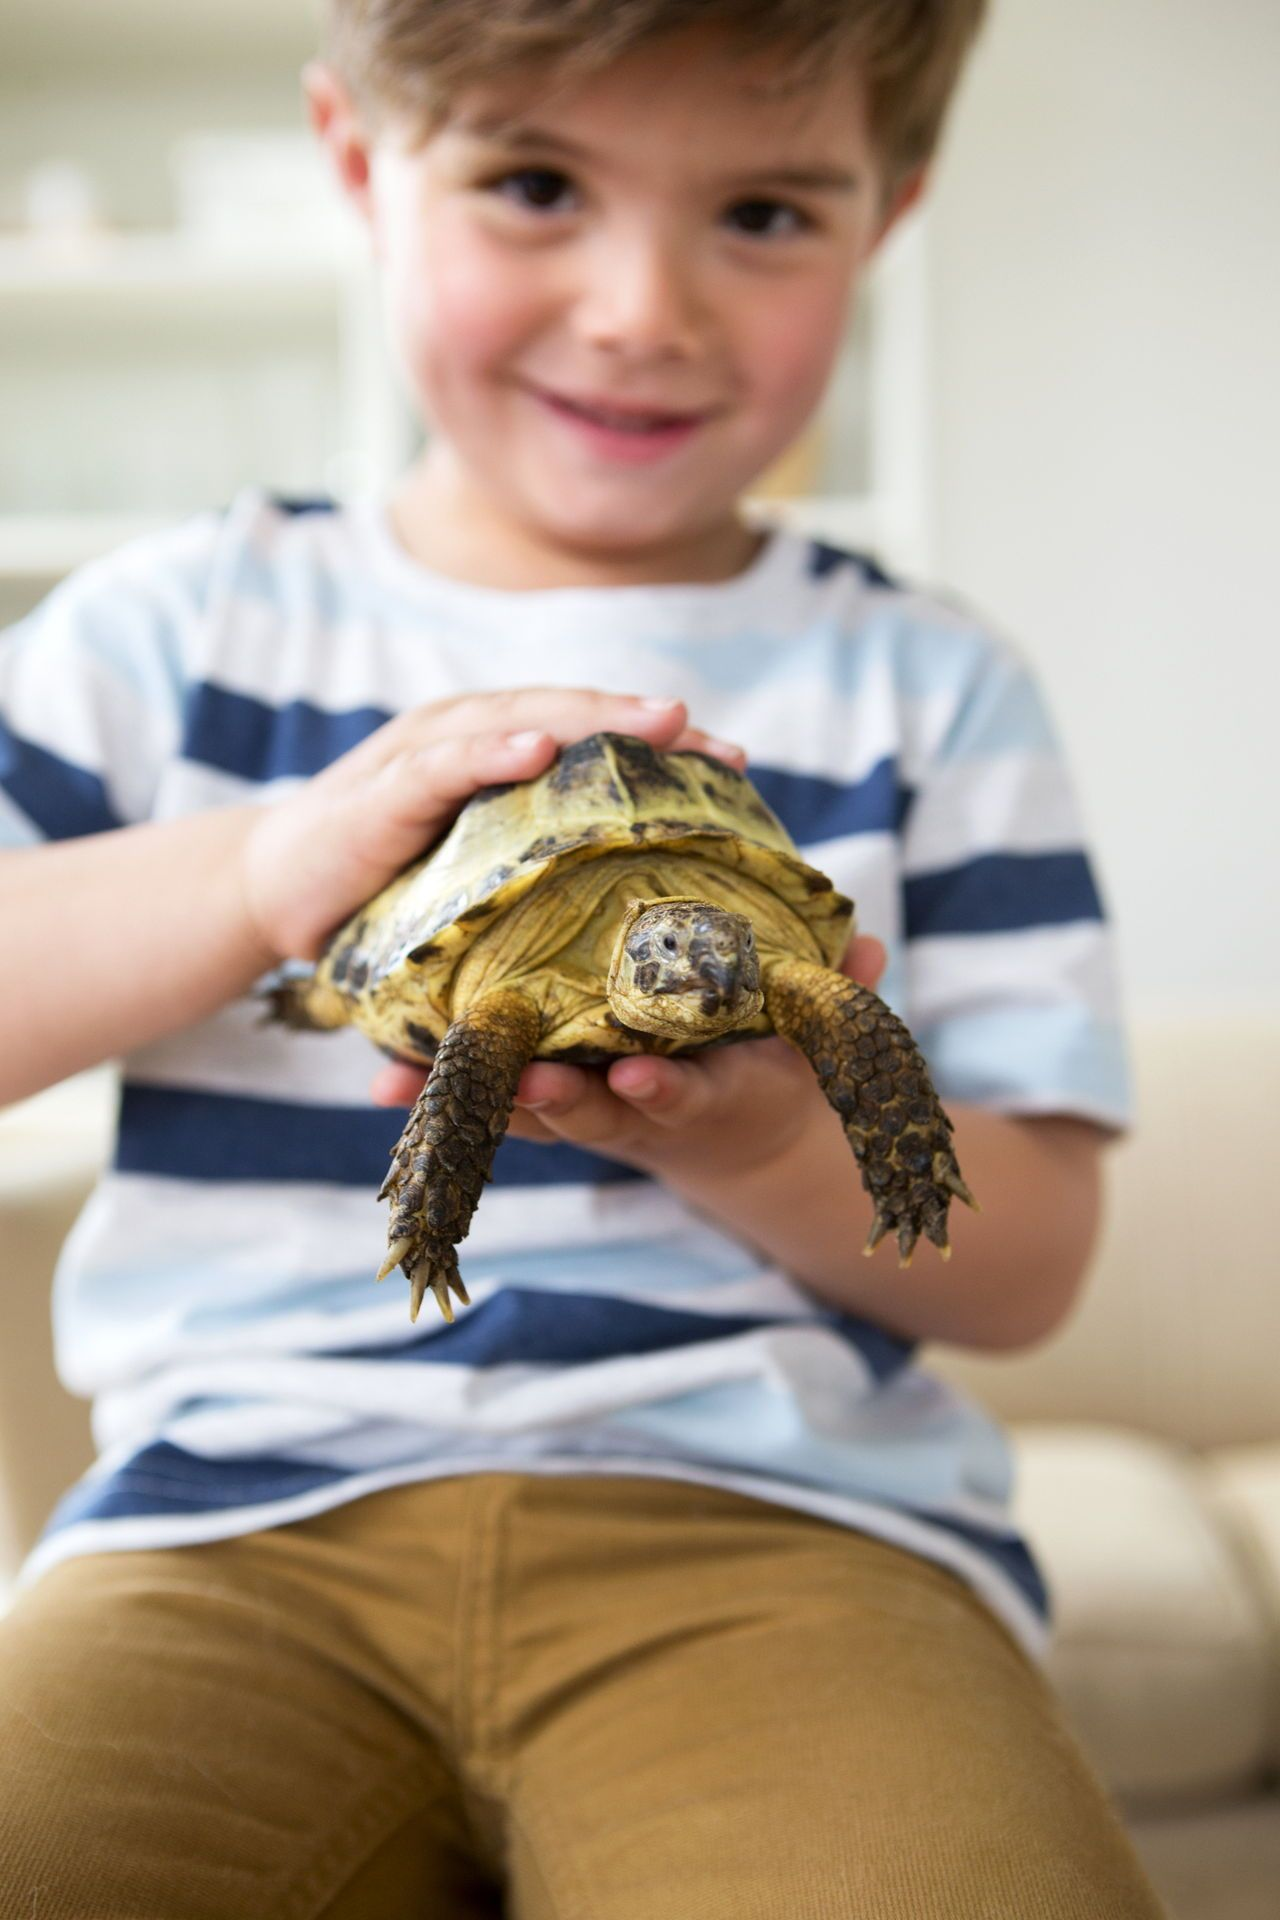 Pet Turtles That Stay Small and Look Cute Forever